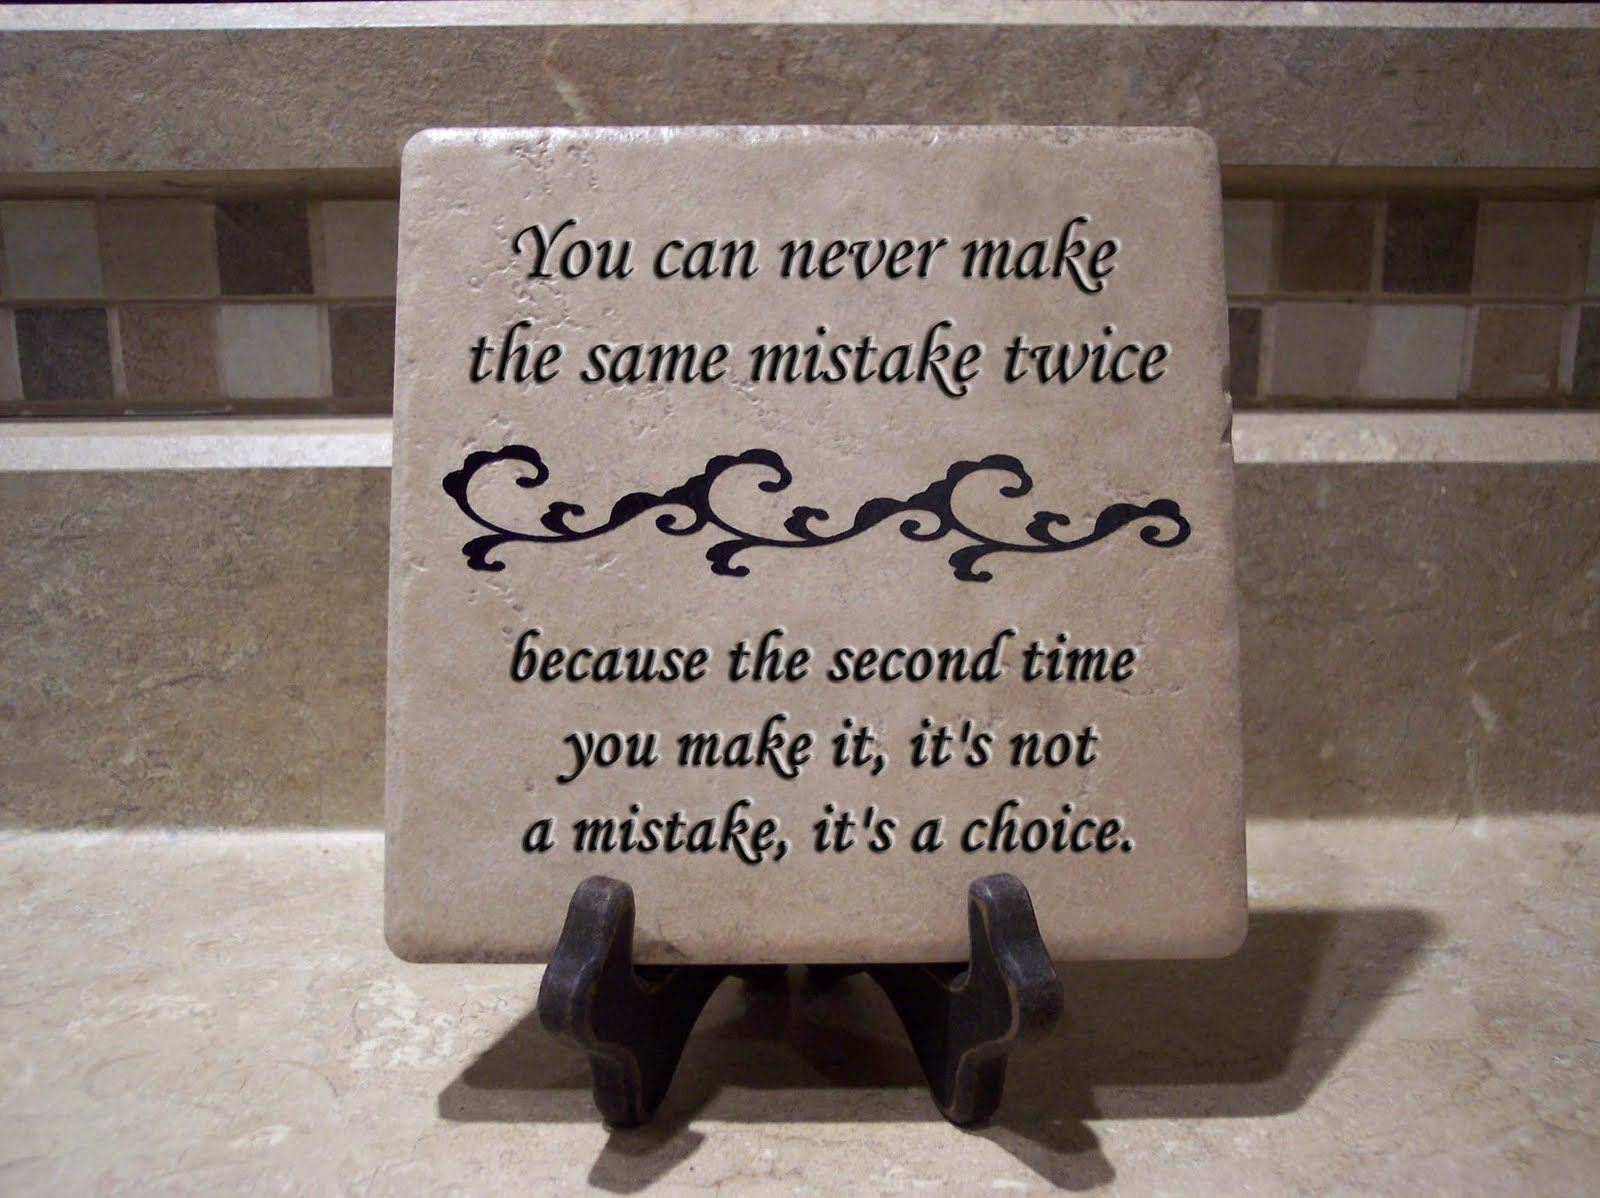 Making The Same Mistakes Over And Over Again Quotes: Repeating The Same Mistakes Quotes. QuotesGram